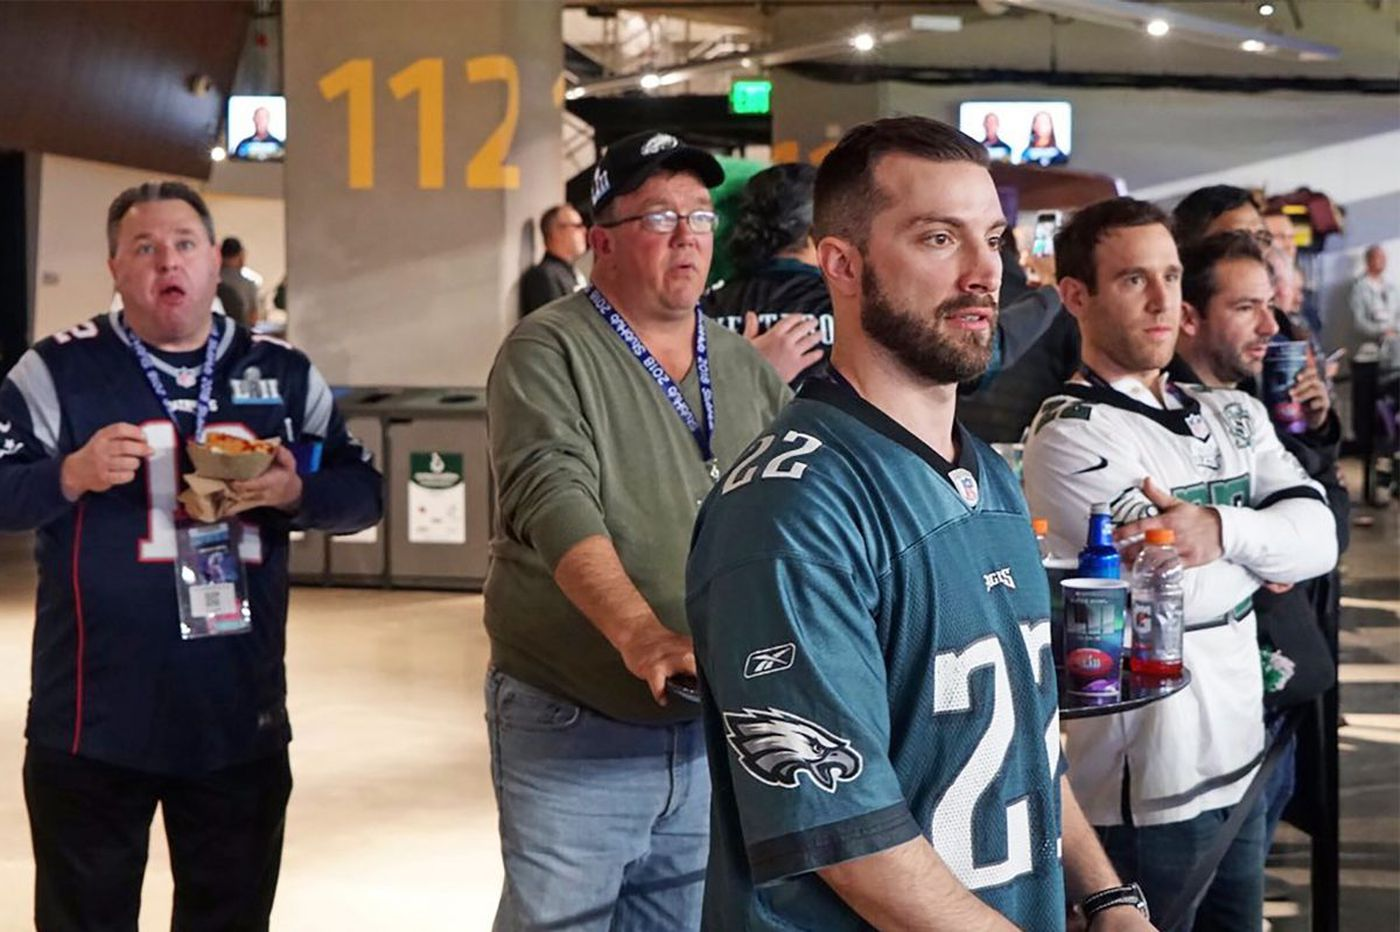 This Eagles fan from Havertown got to the Super Bowl for $14.37 and a lifetime of memories